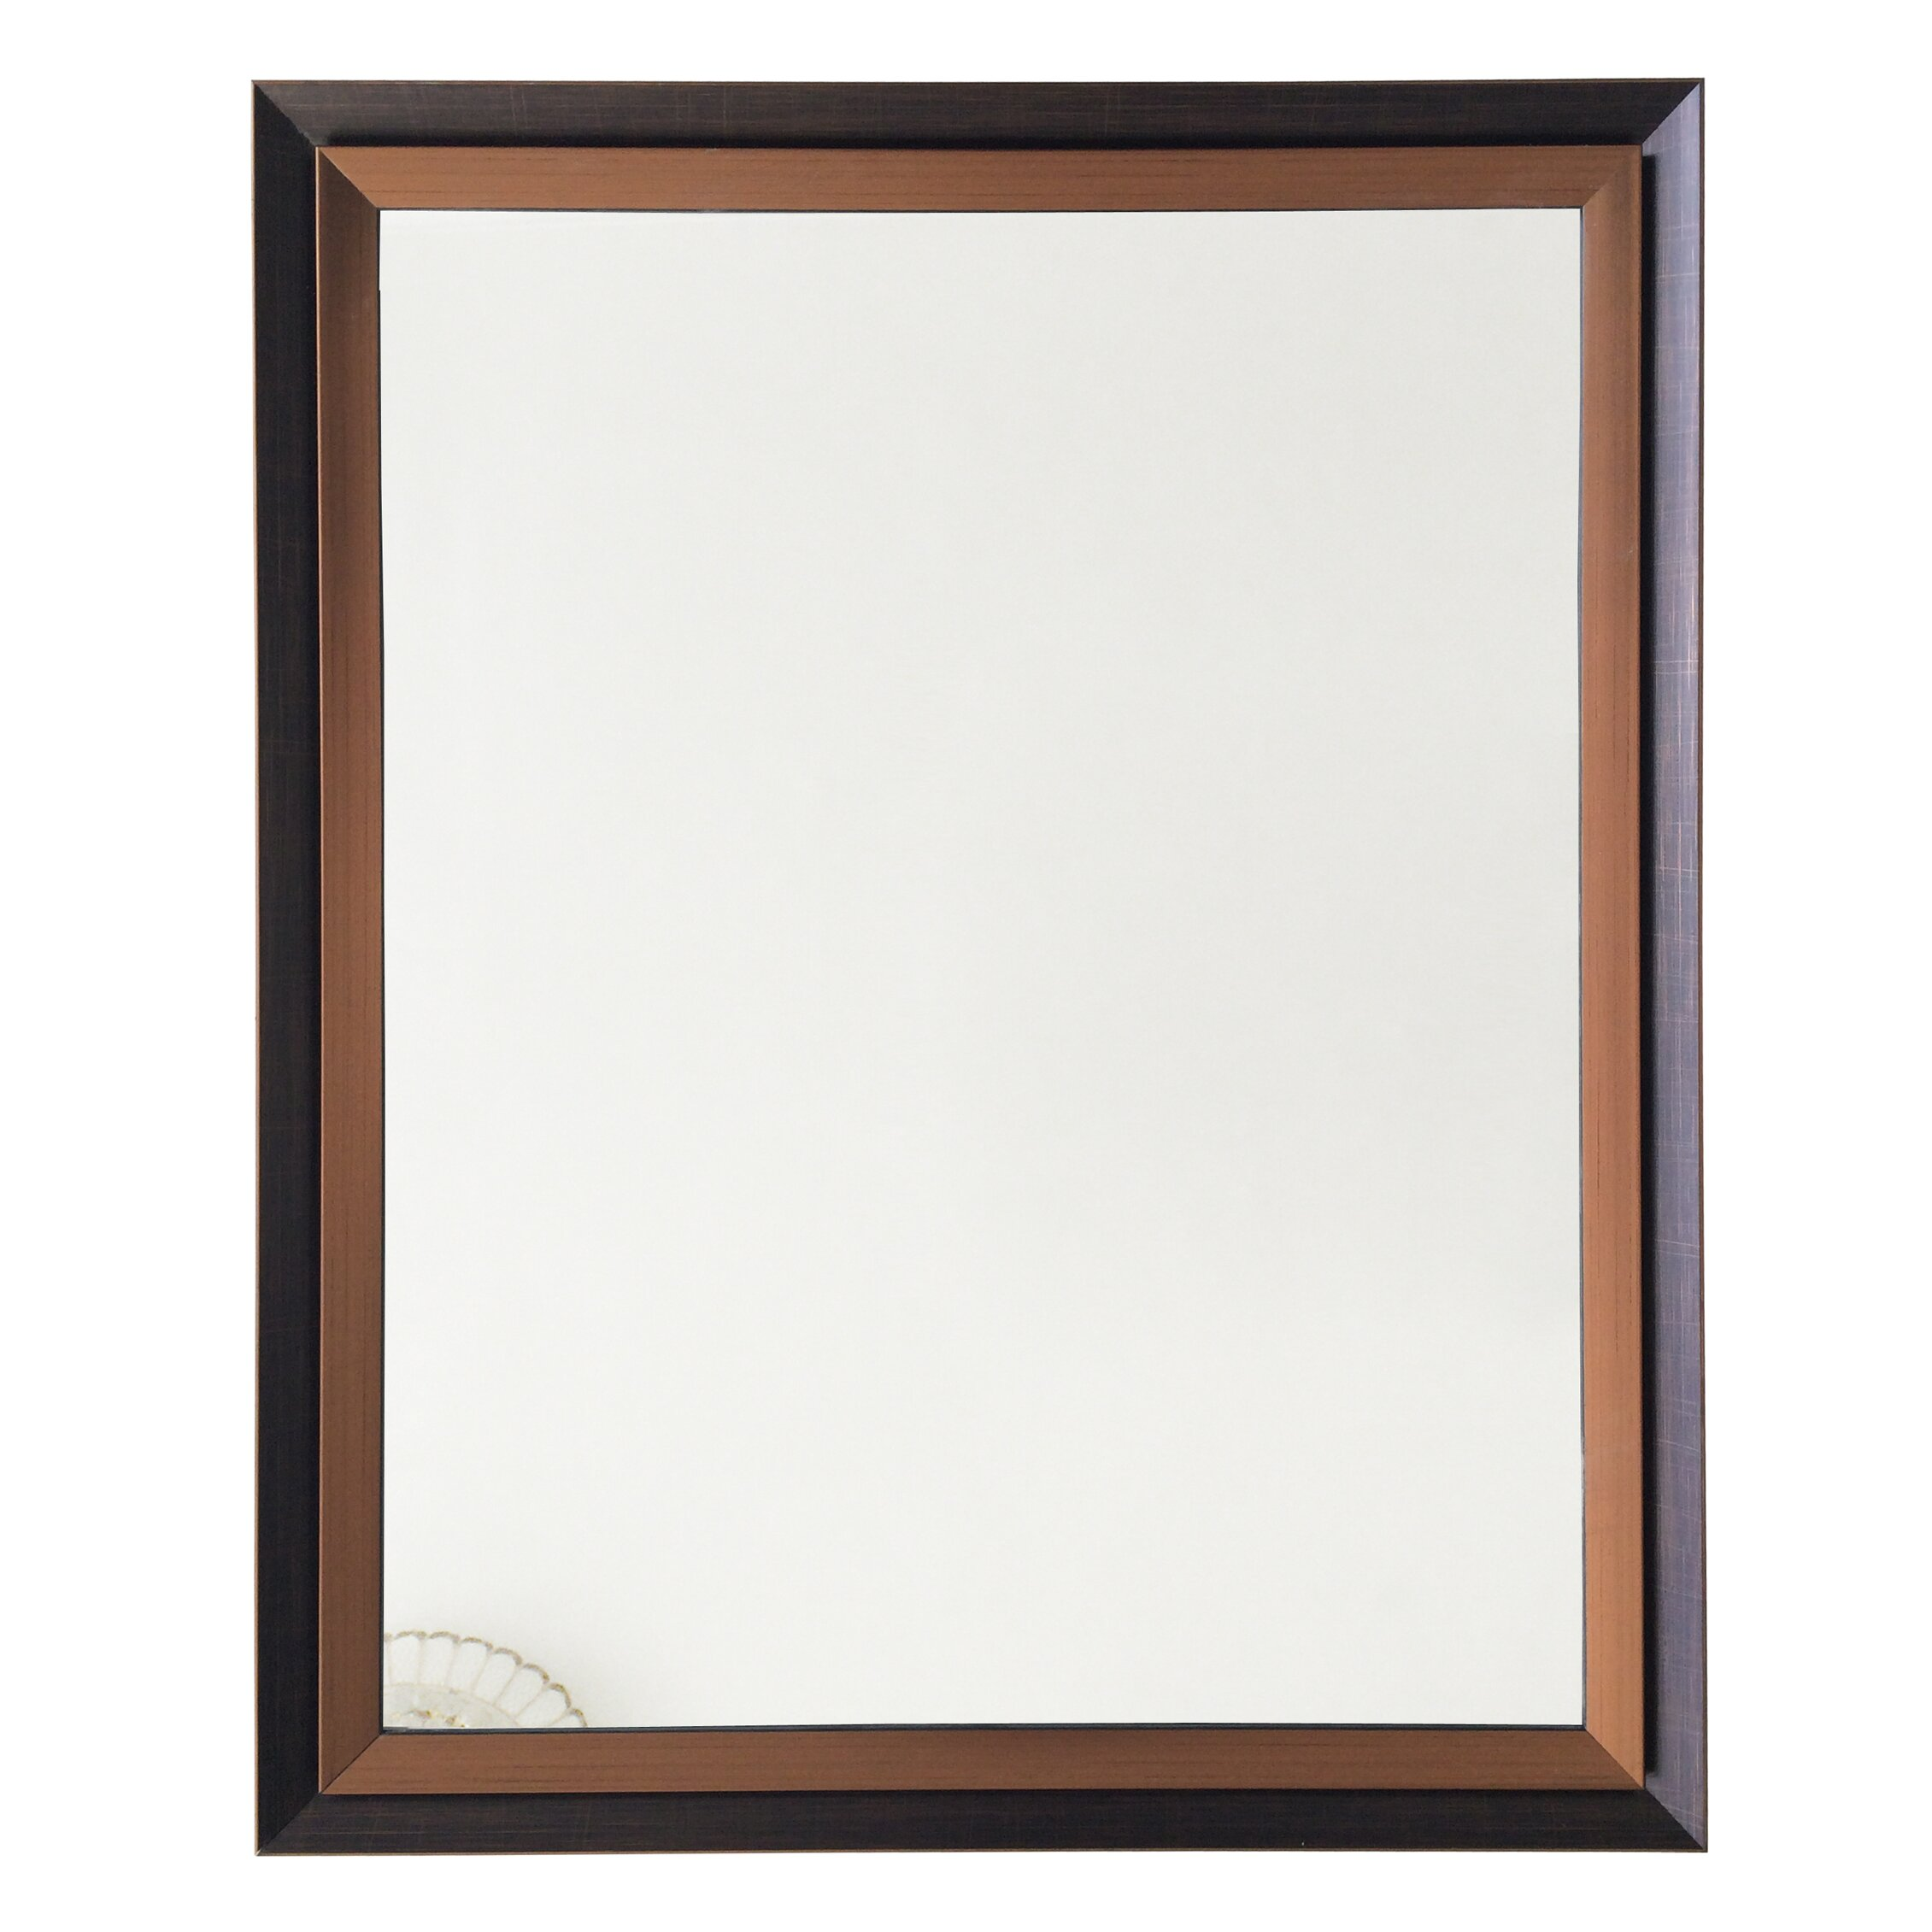 Kingwinhomedecor framed wall mirror reviews wayfair for Wall mirror design